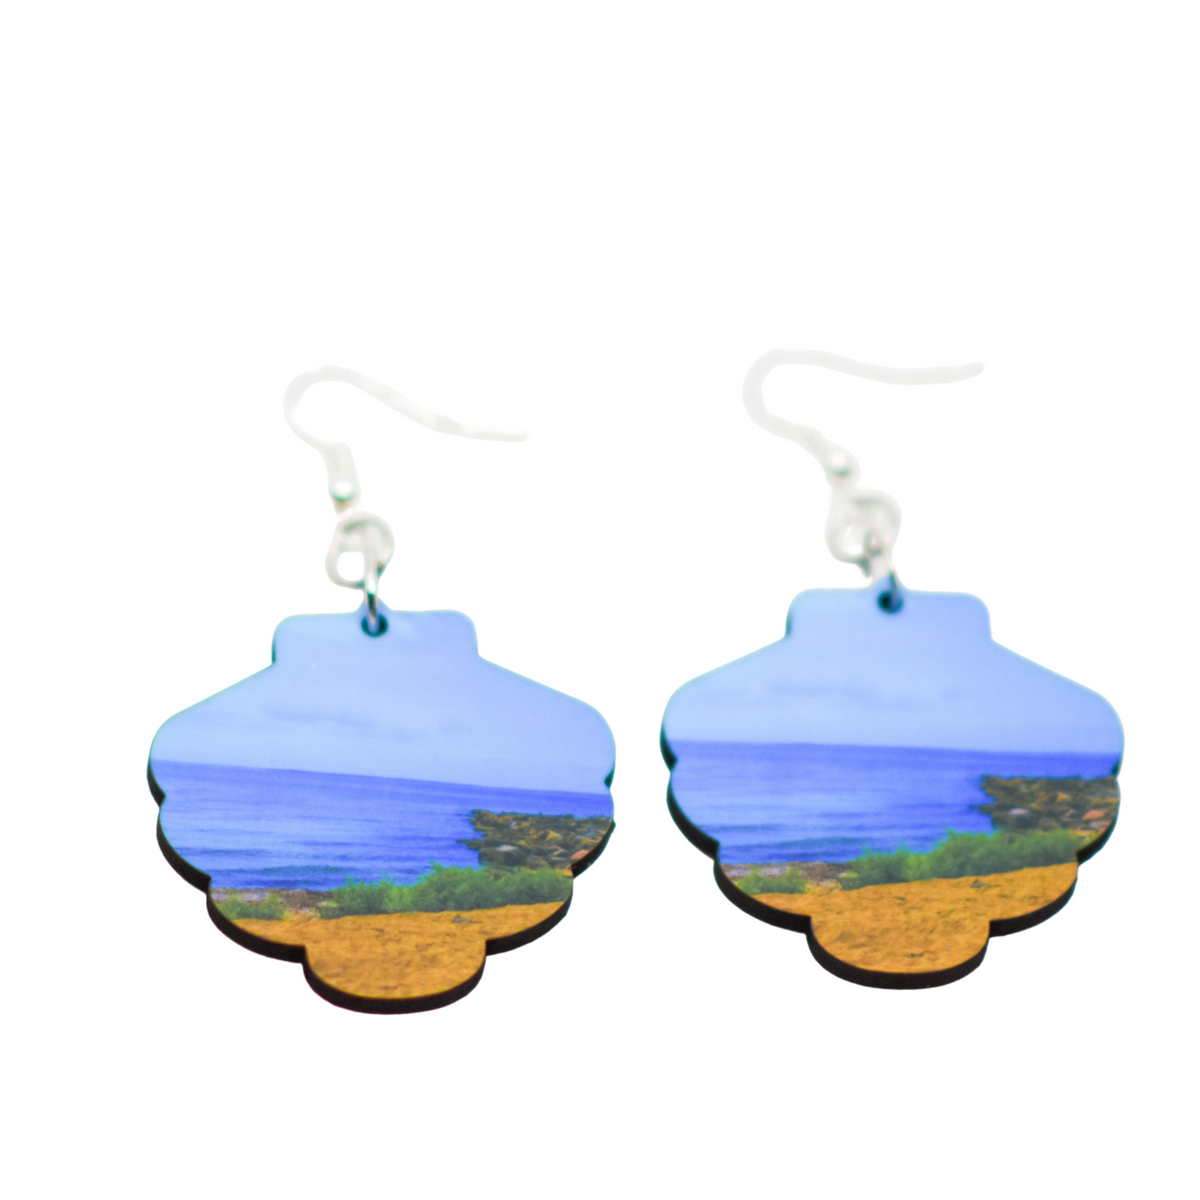 Standard view of Peaceful Beach Seashell Earring | Wear the Wonder